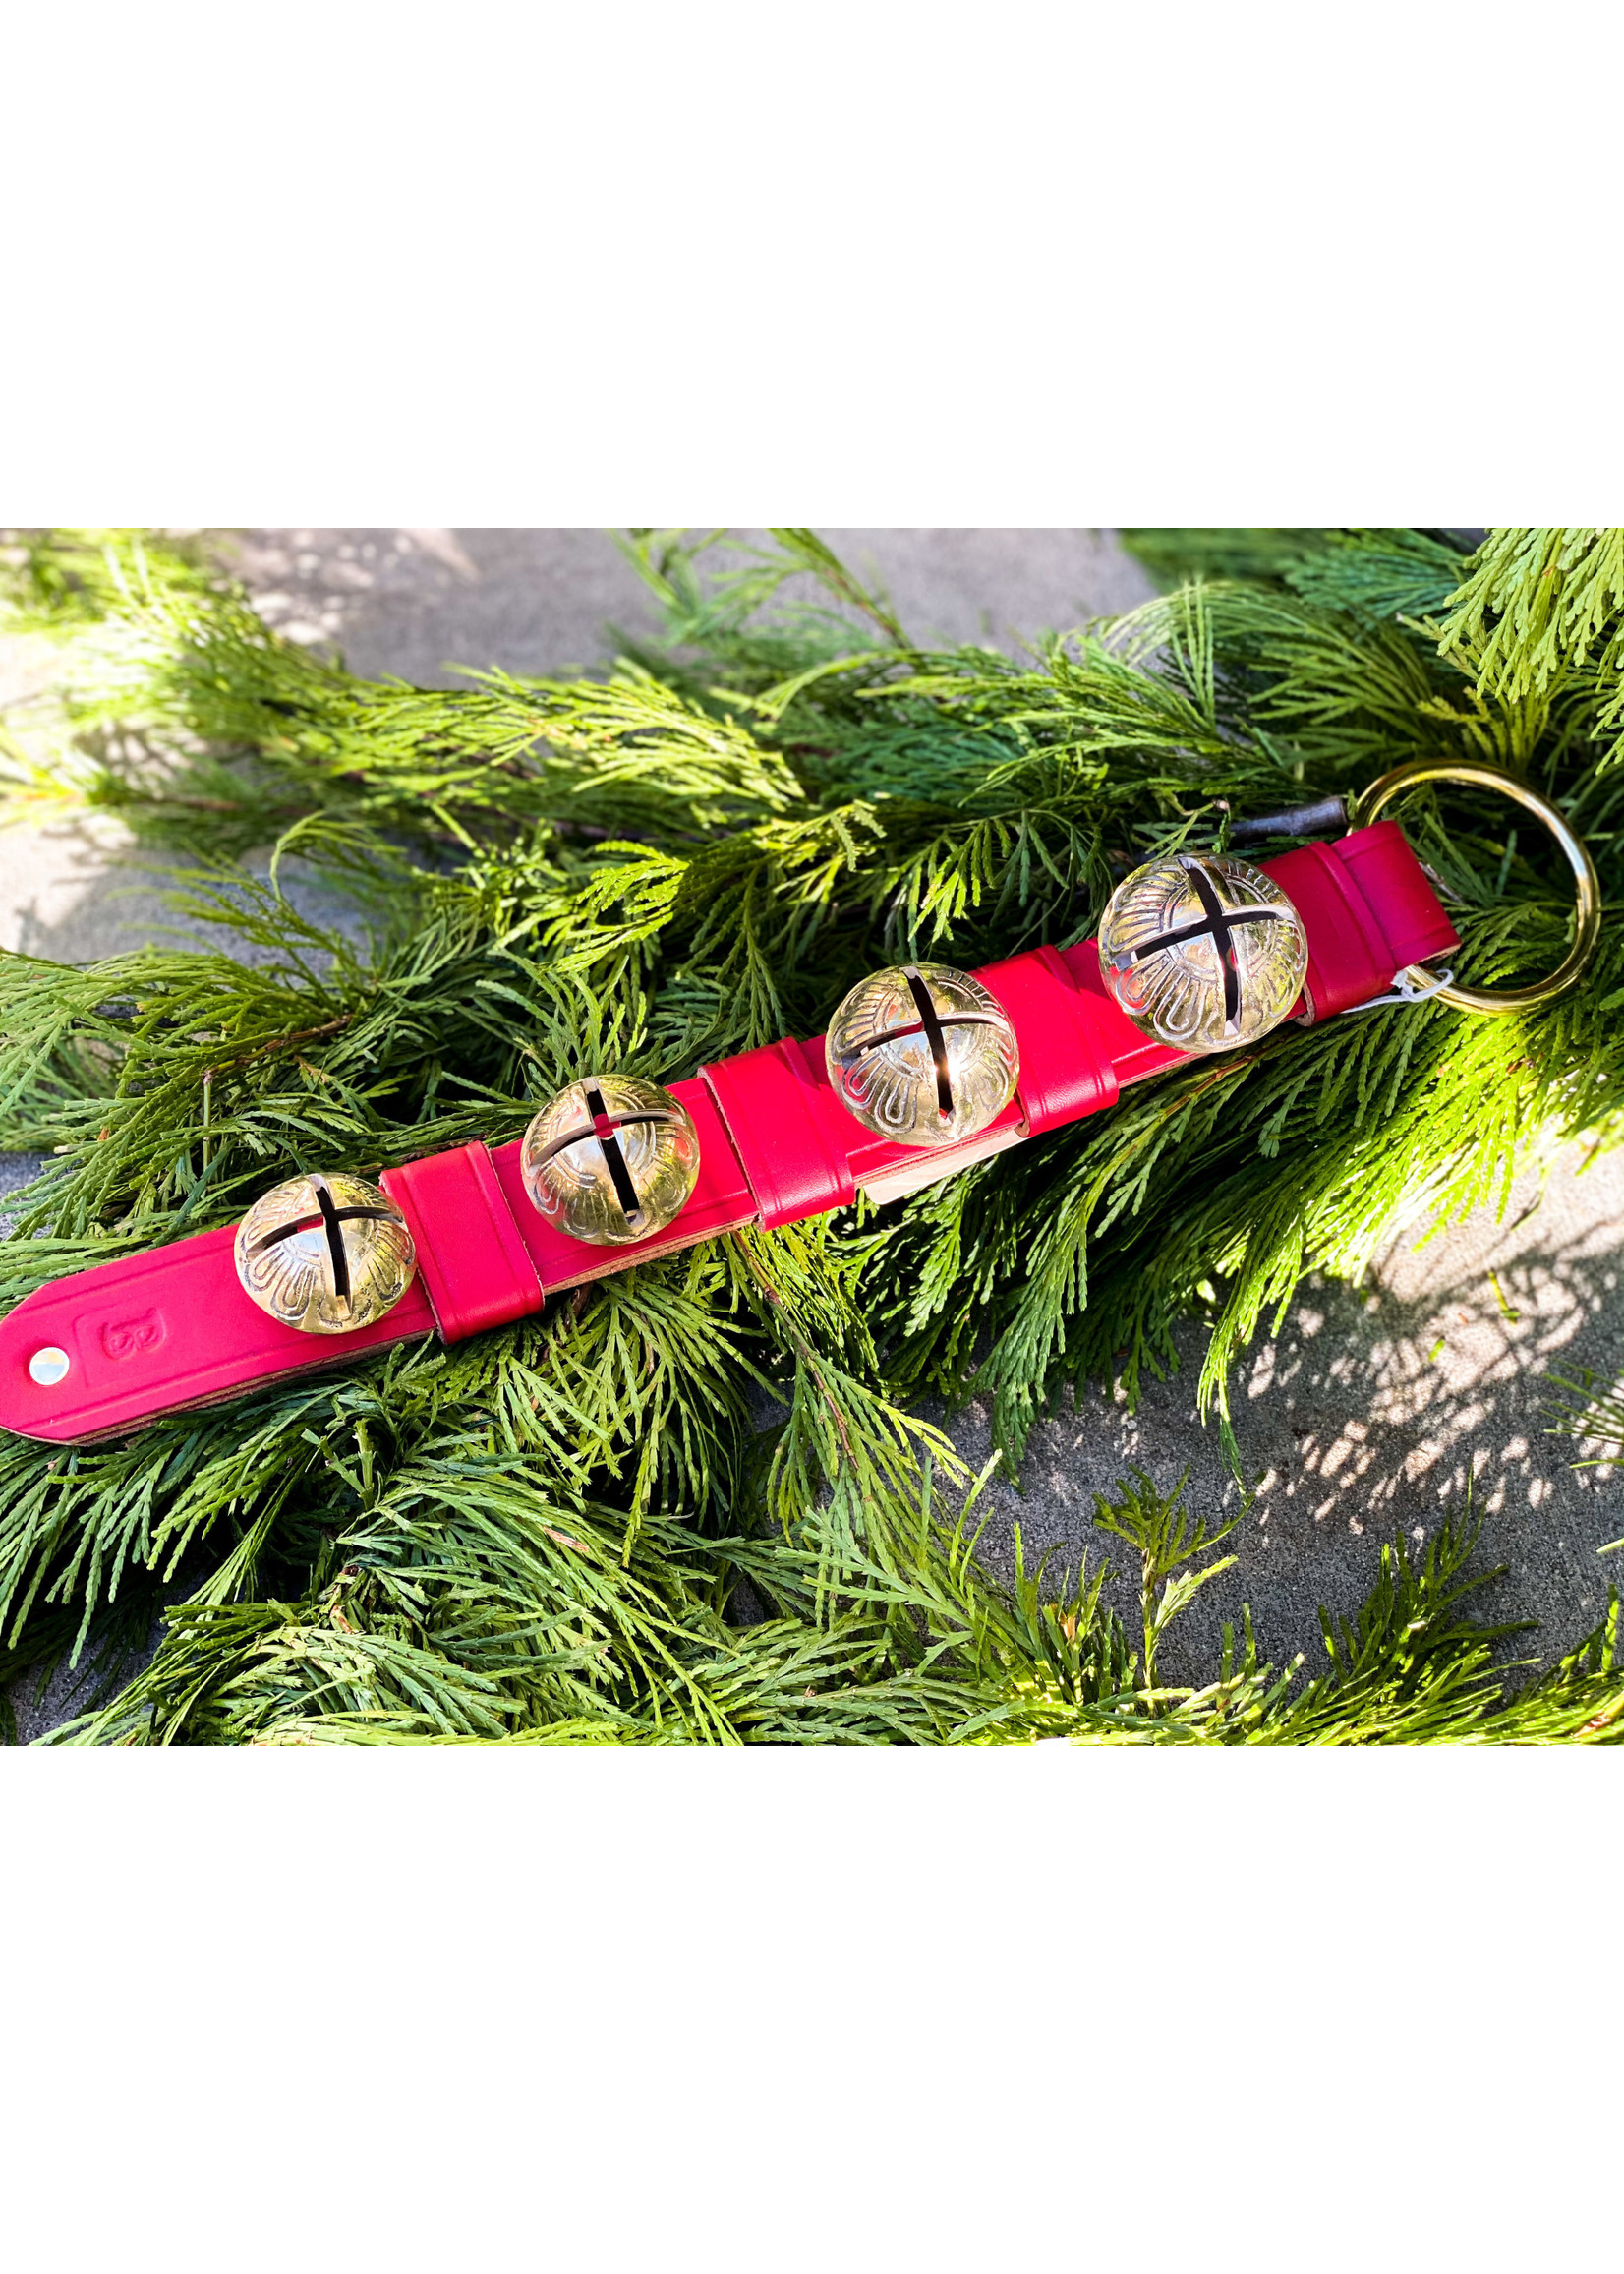 Bells - Keeper 4 Bell Strap with Rivet - Red